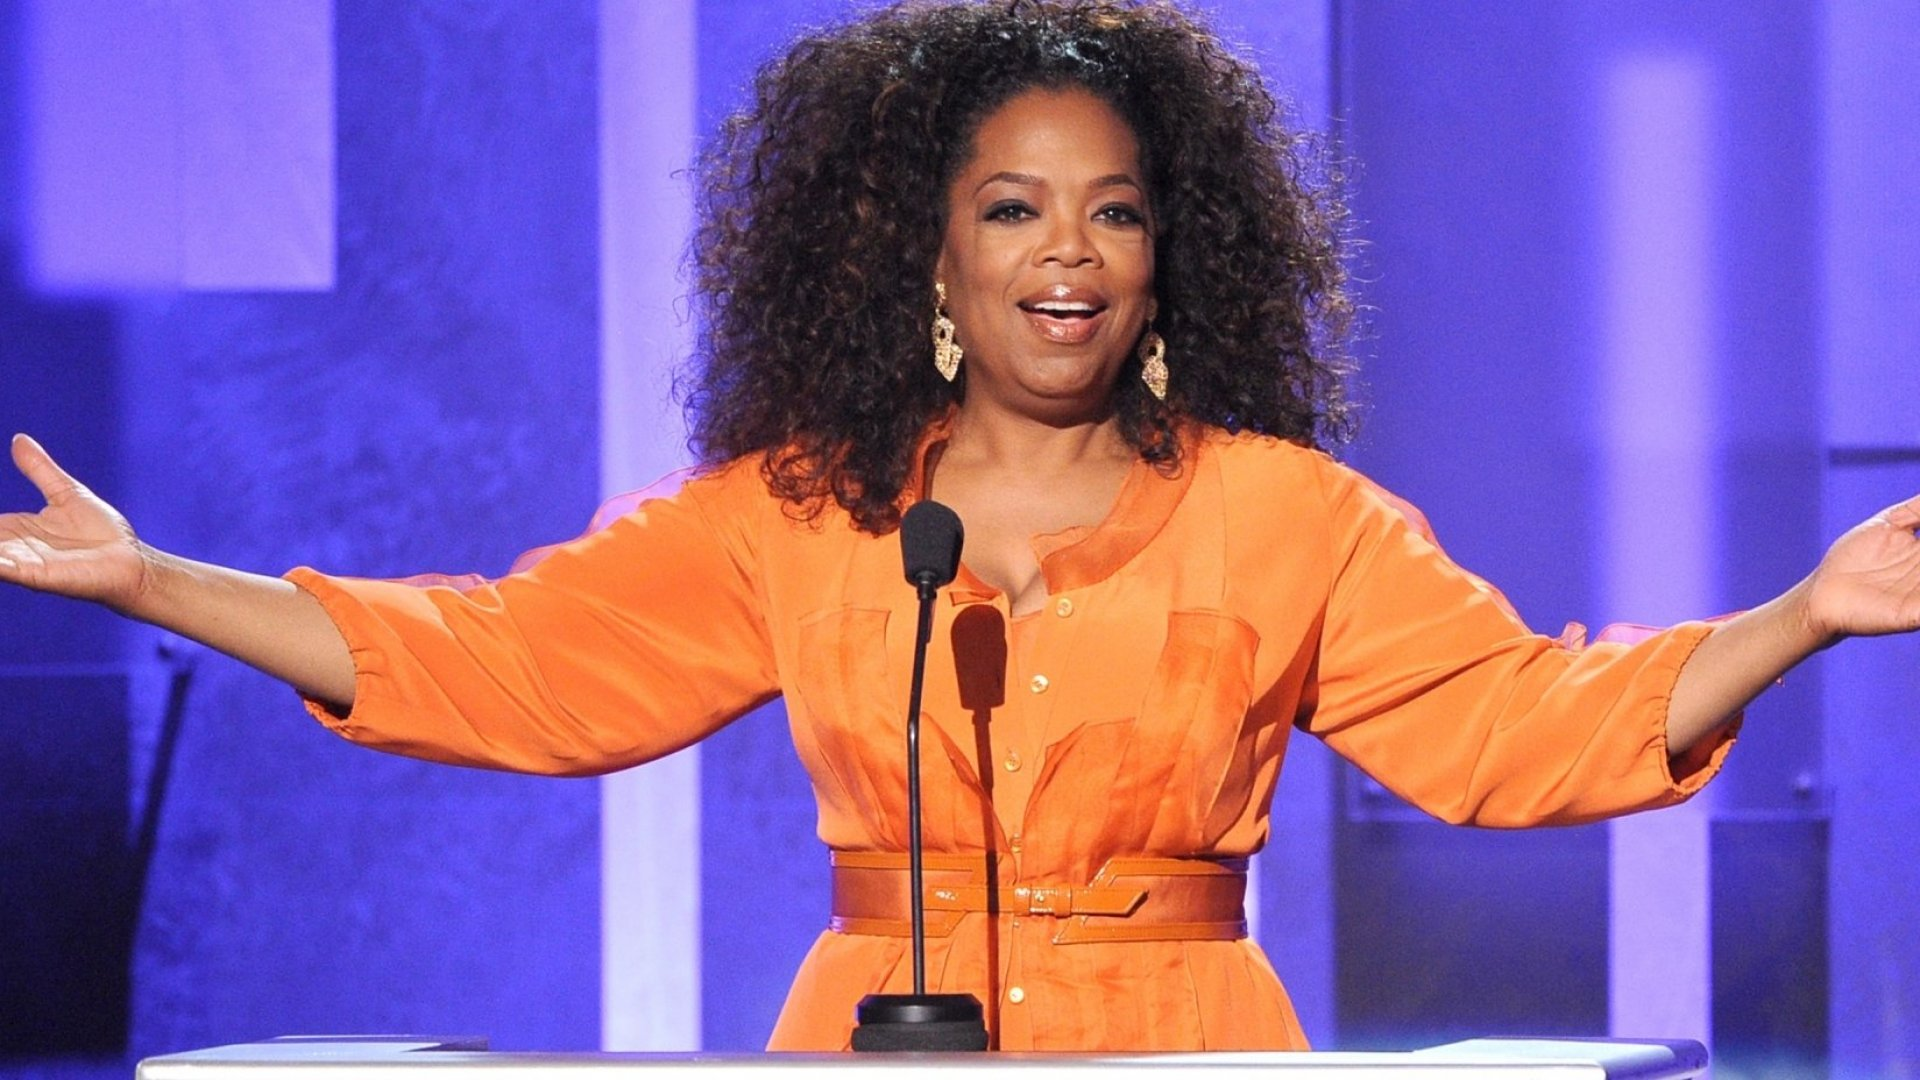 Oprah Winfrey Only Needed 1 Surprising Word to Show How to Be Genuinely Confident (and Science Says More Likable, Too)